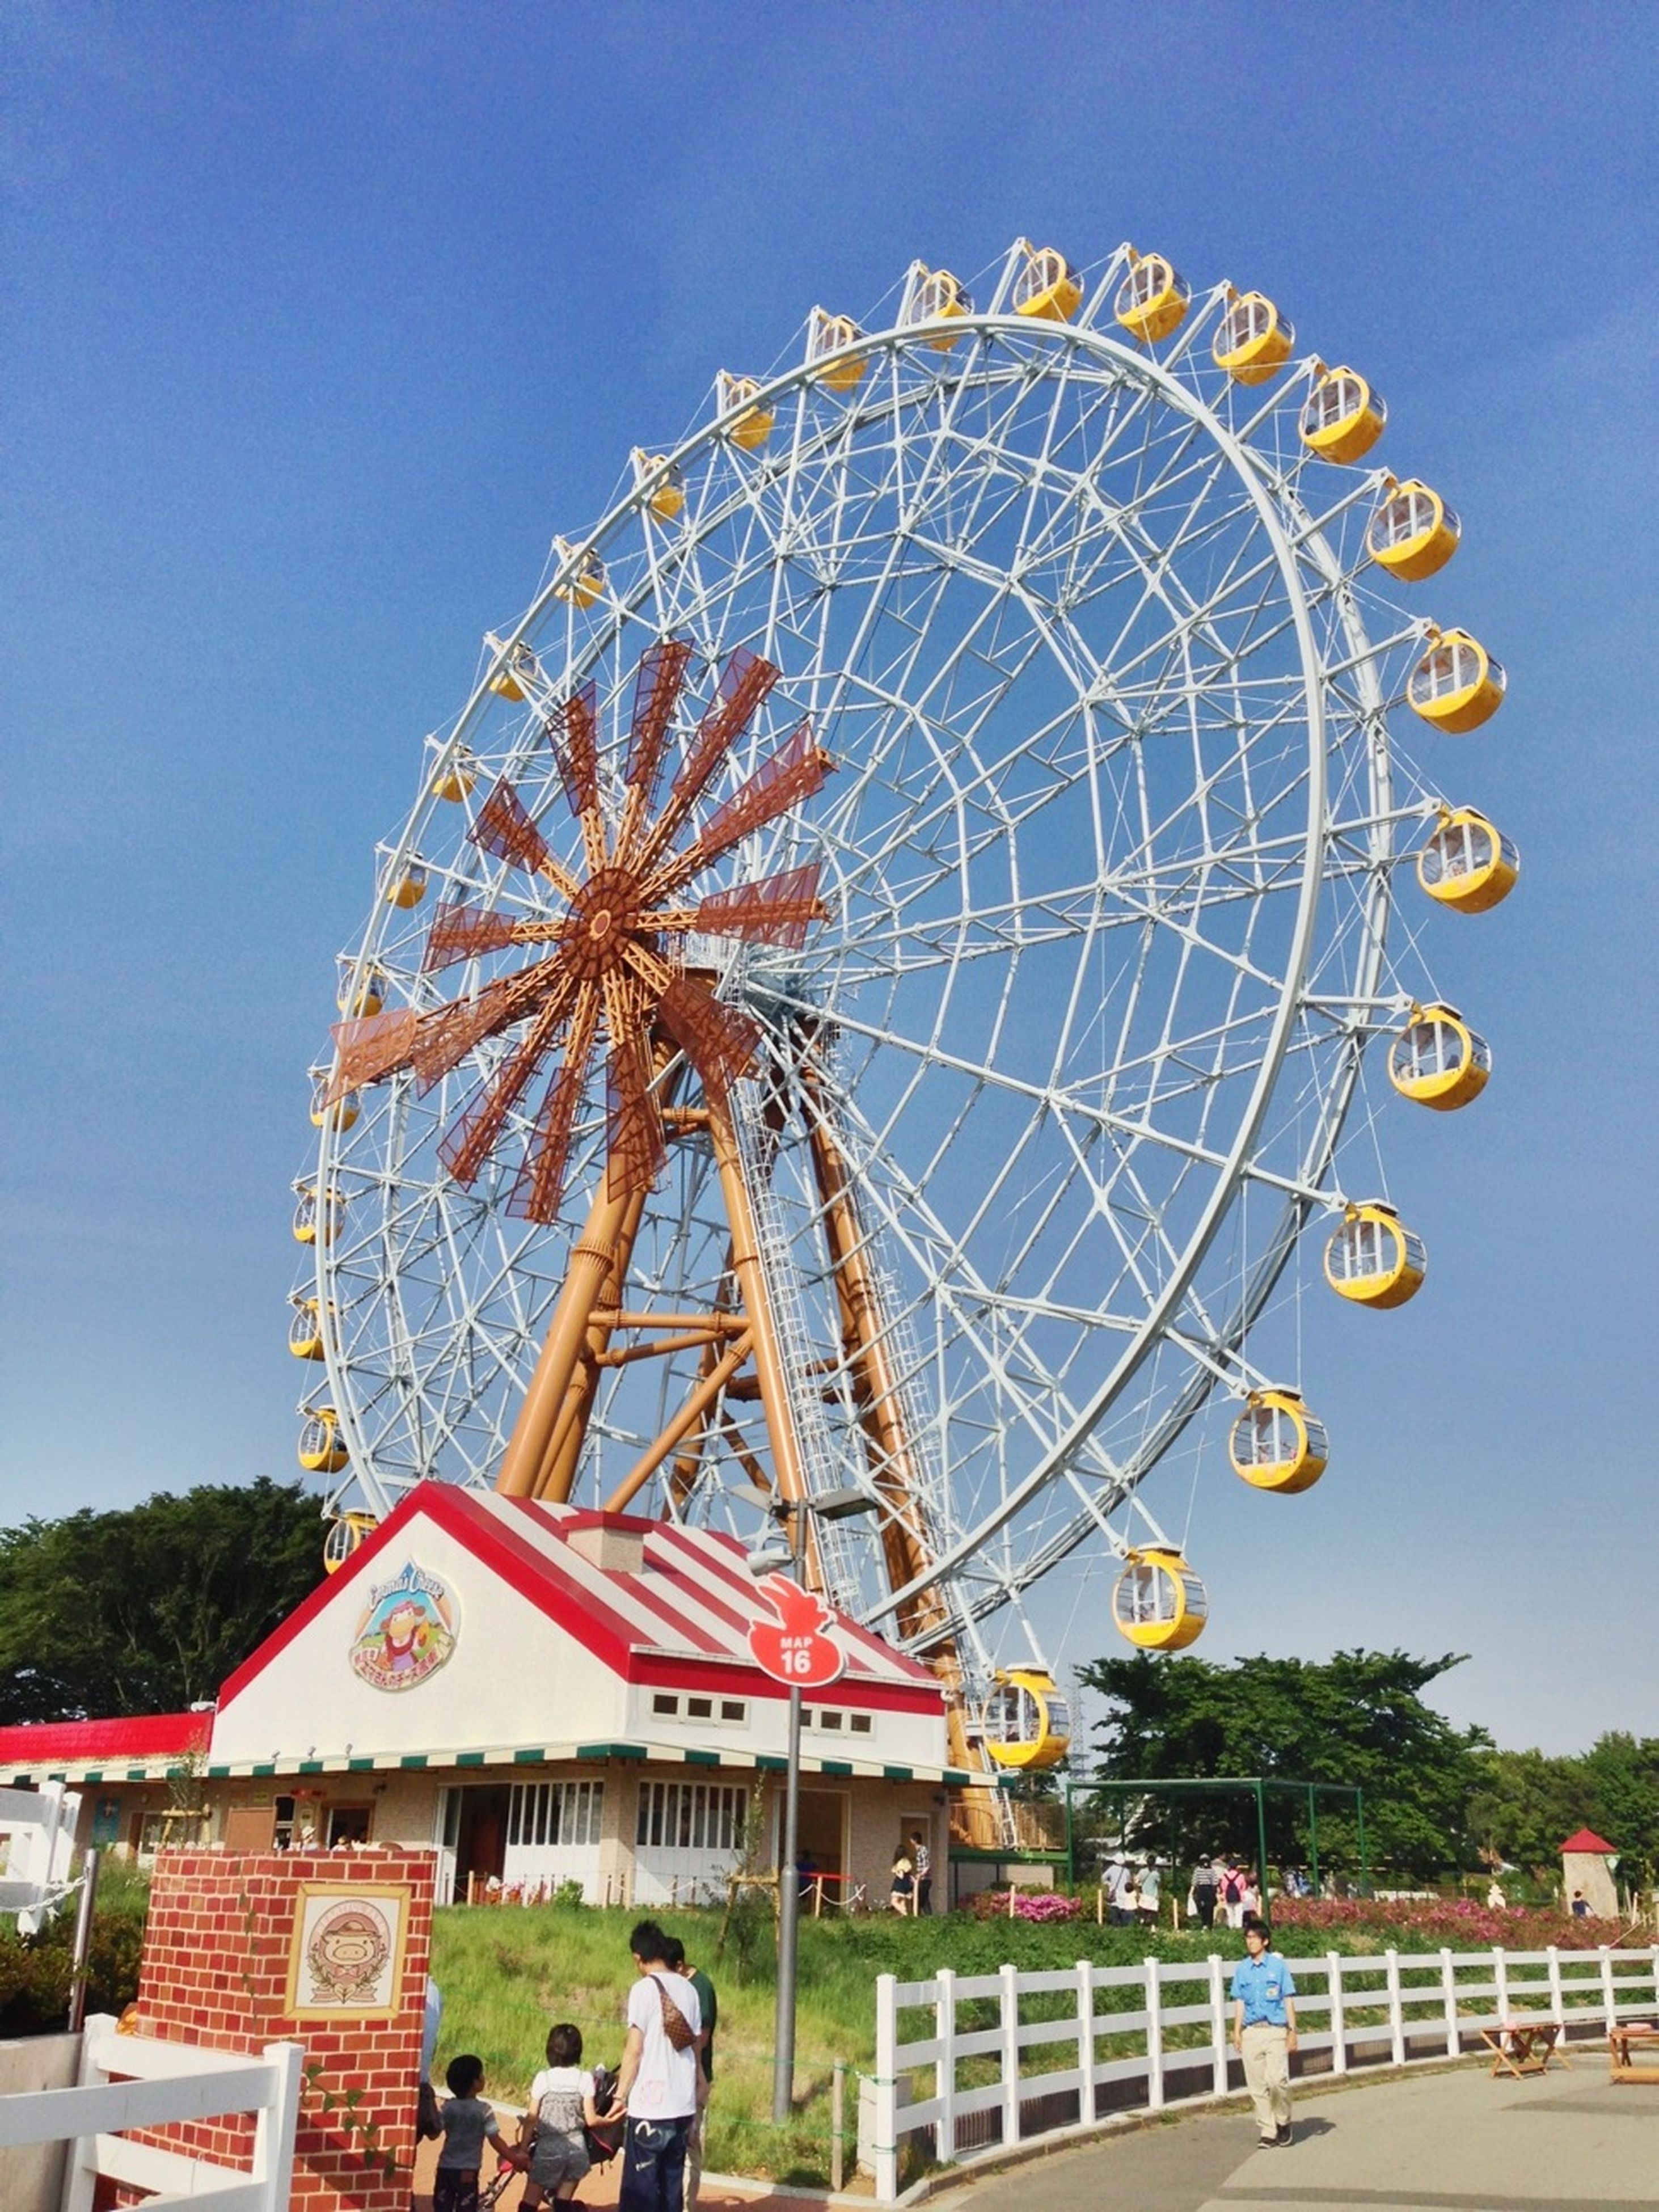 amusement park, amusement park ride, ferris wheel, arts culture and entertainment, low angle view, leisure activity, clear sky, fun, enjoyment, tree, sky, built structure, architecture, incidental people, outdoors, traveling carnival, blue, large, big wheel, day